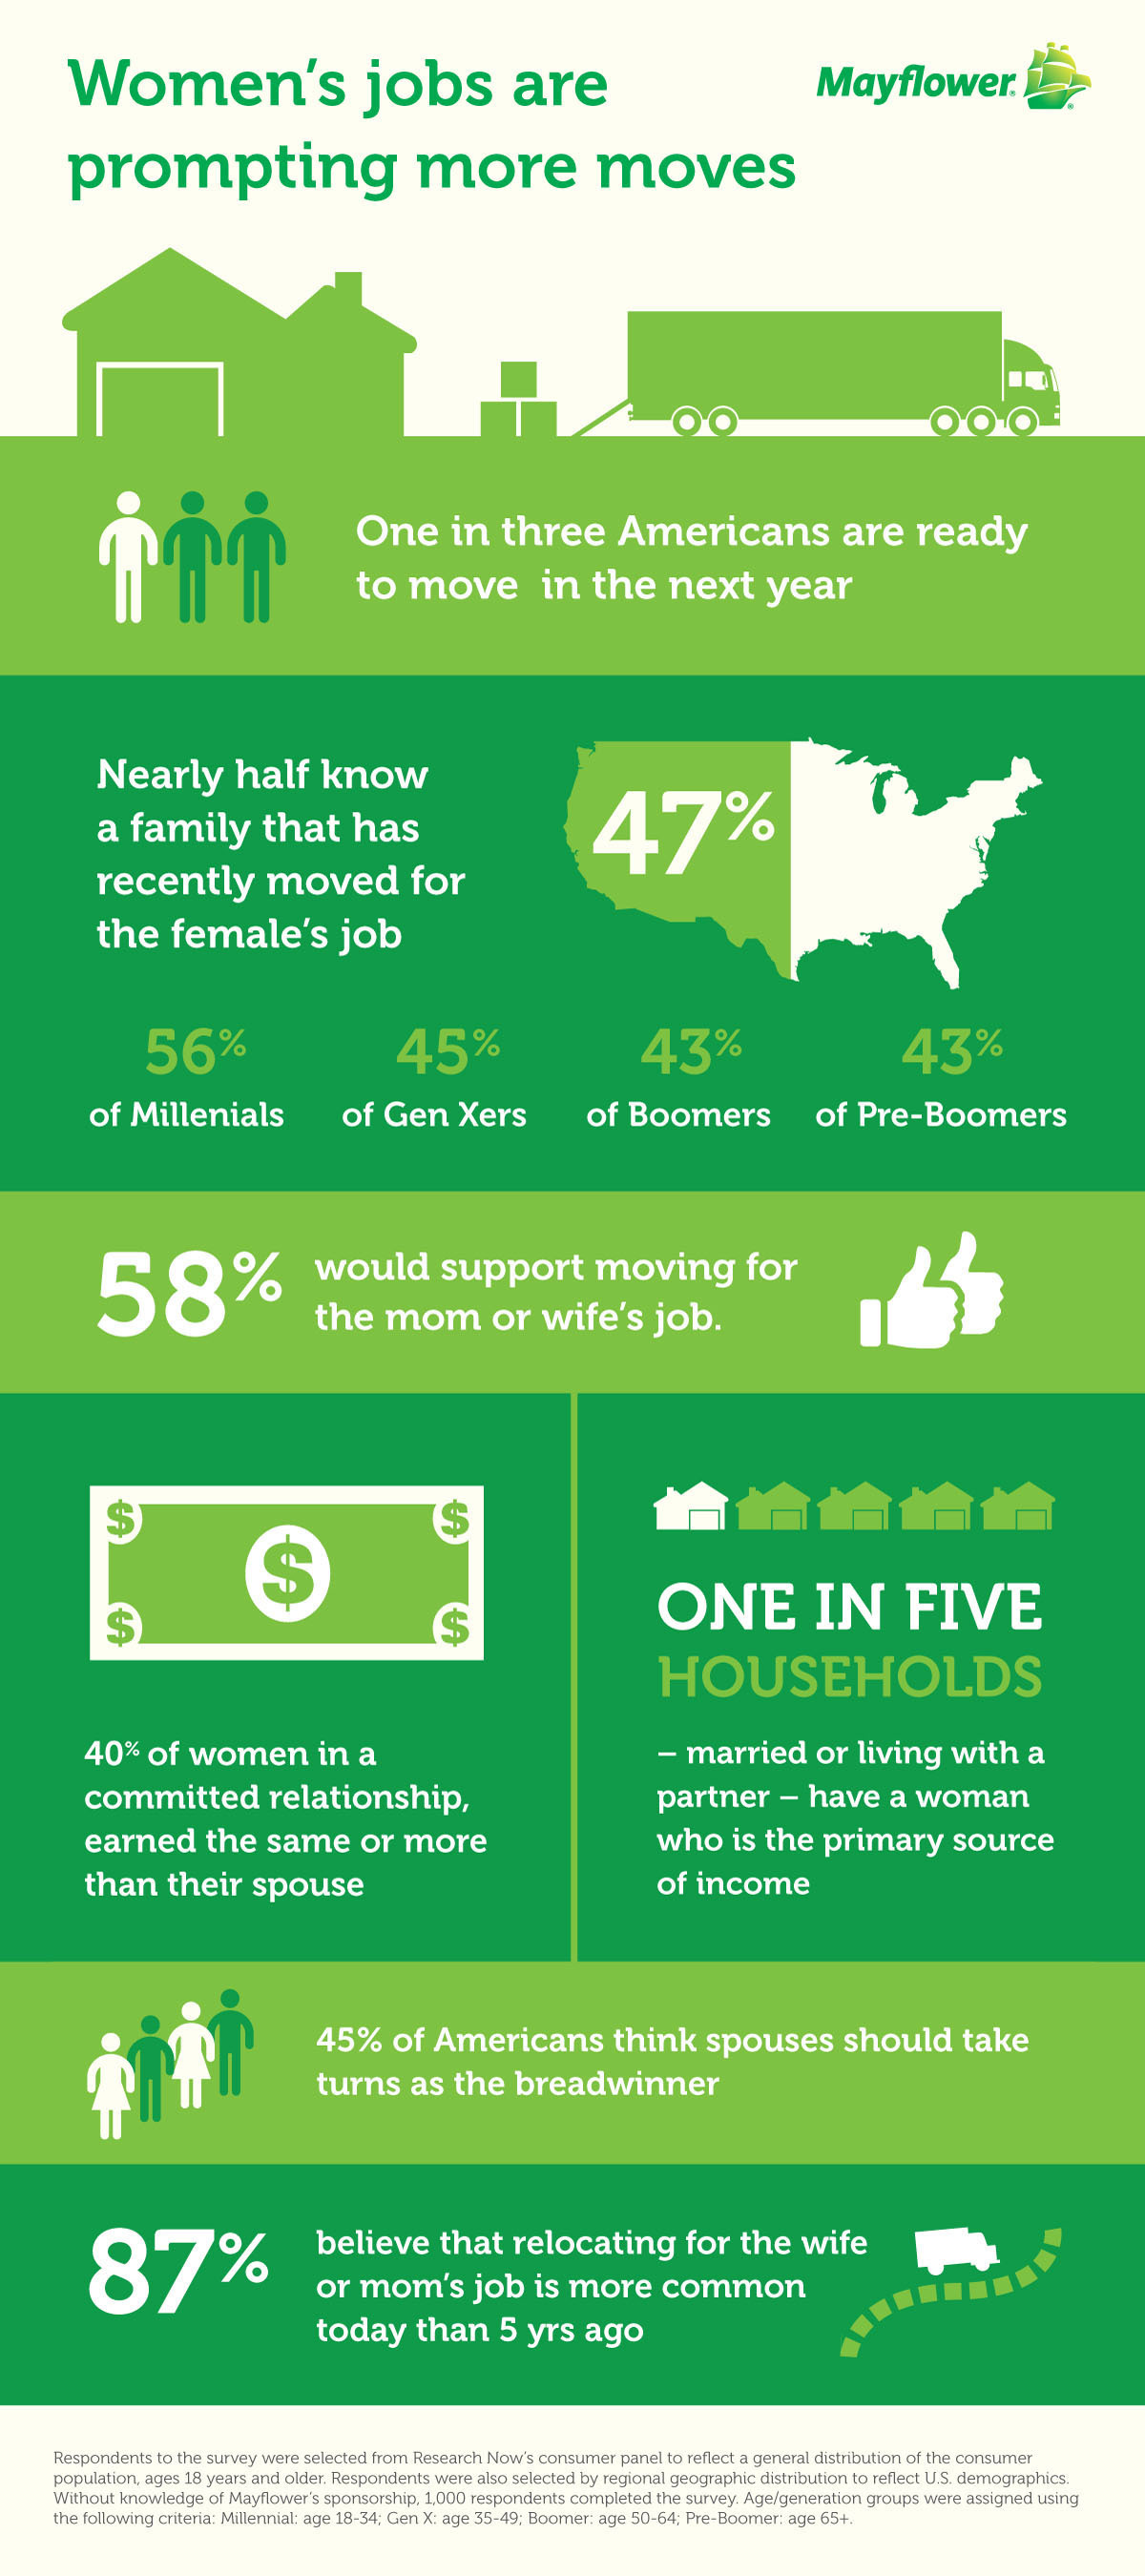 Mayflower Survey Reveals Families Are More Willing to Relocate for the Woman's Job: Nearly one-third of ...